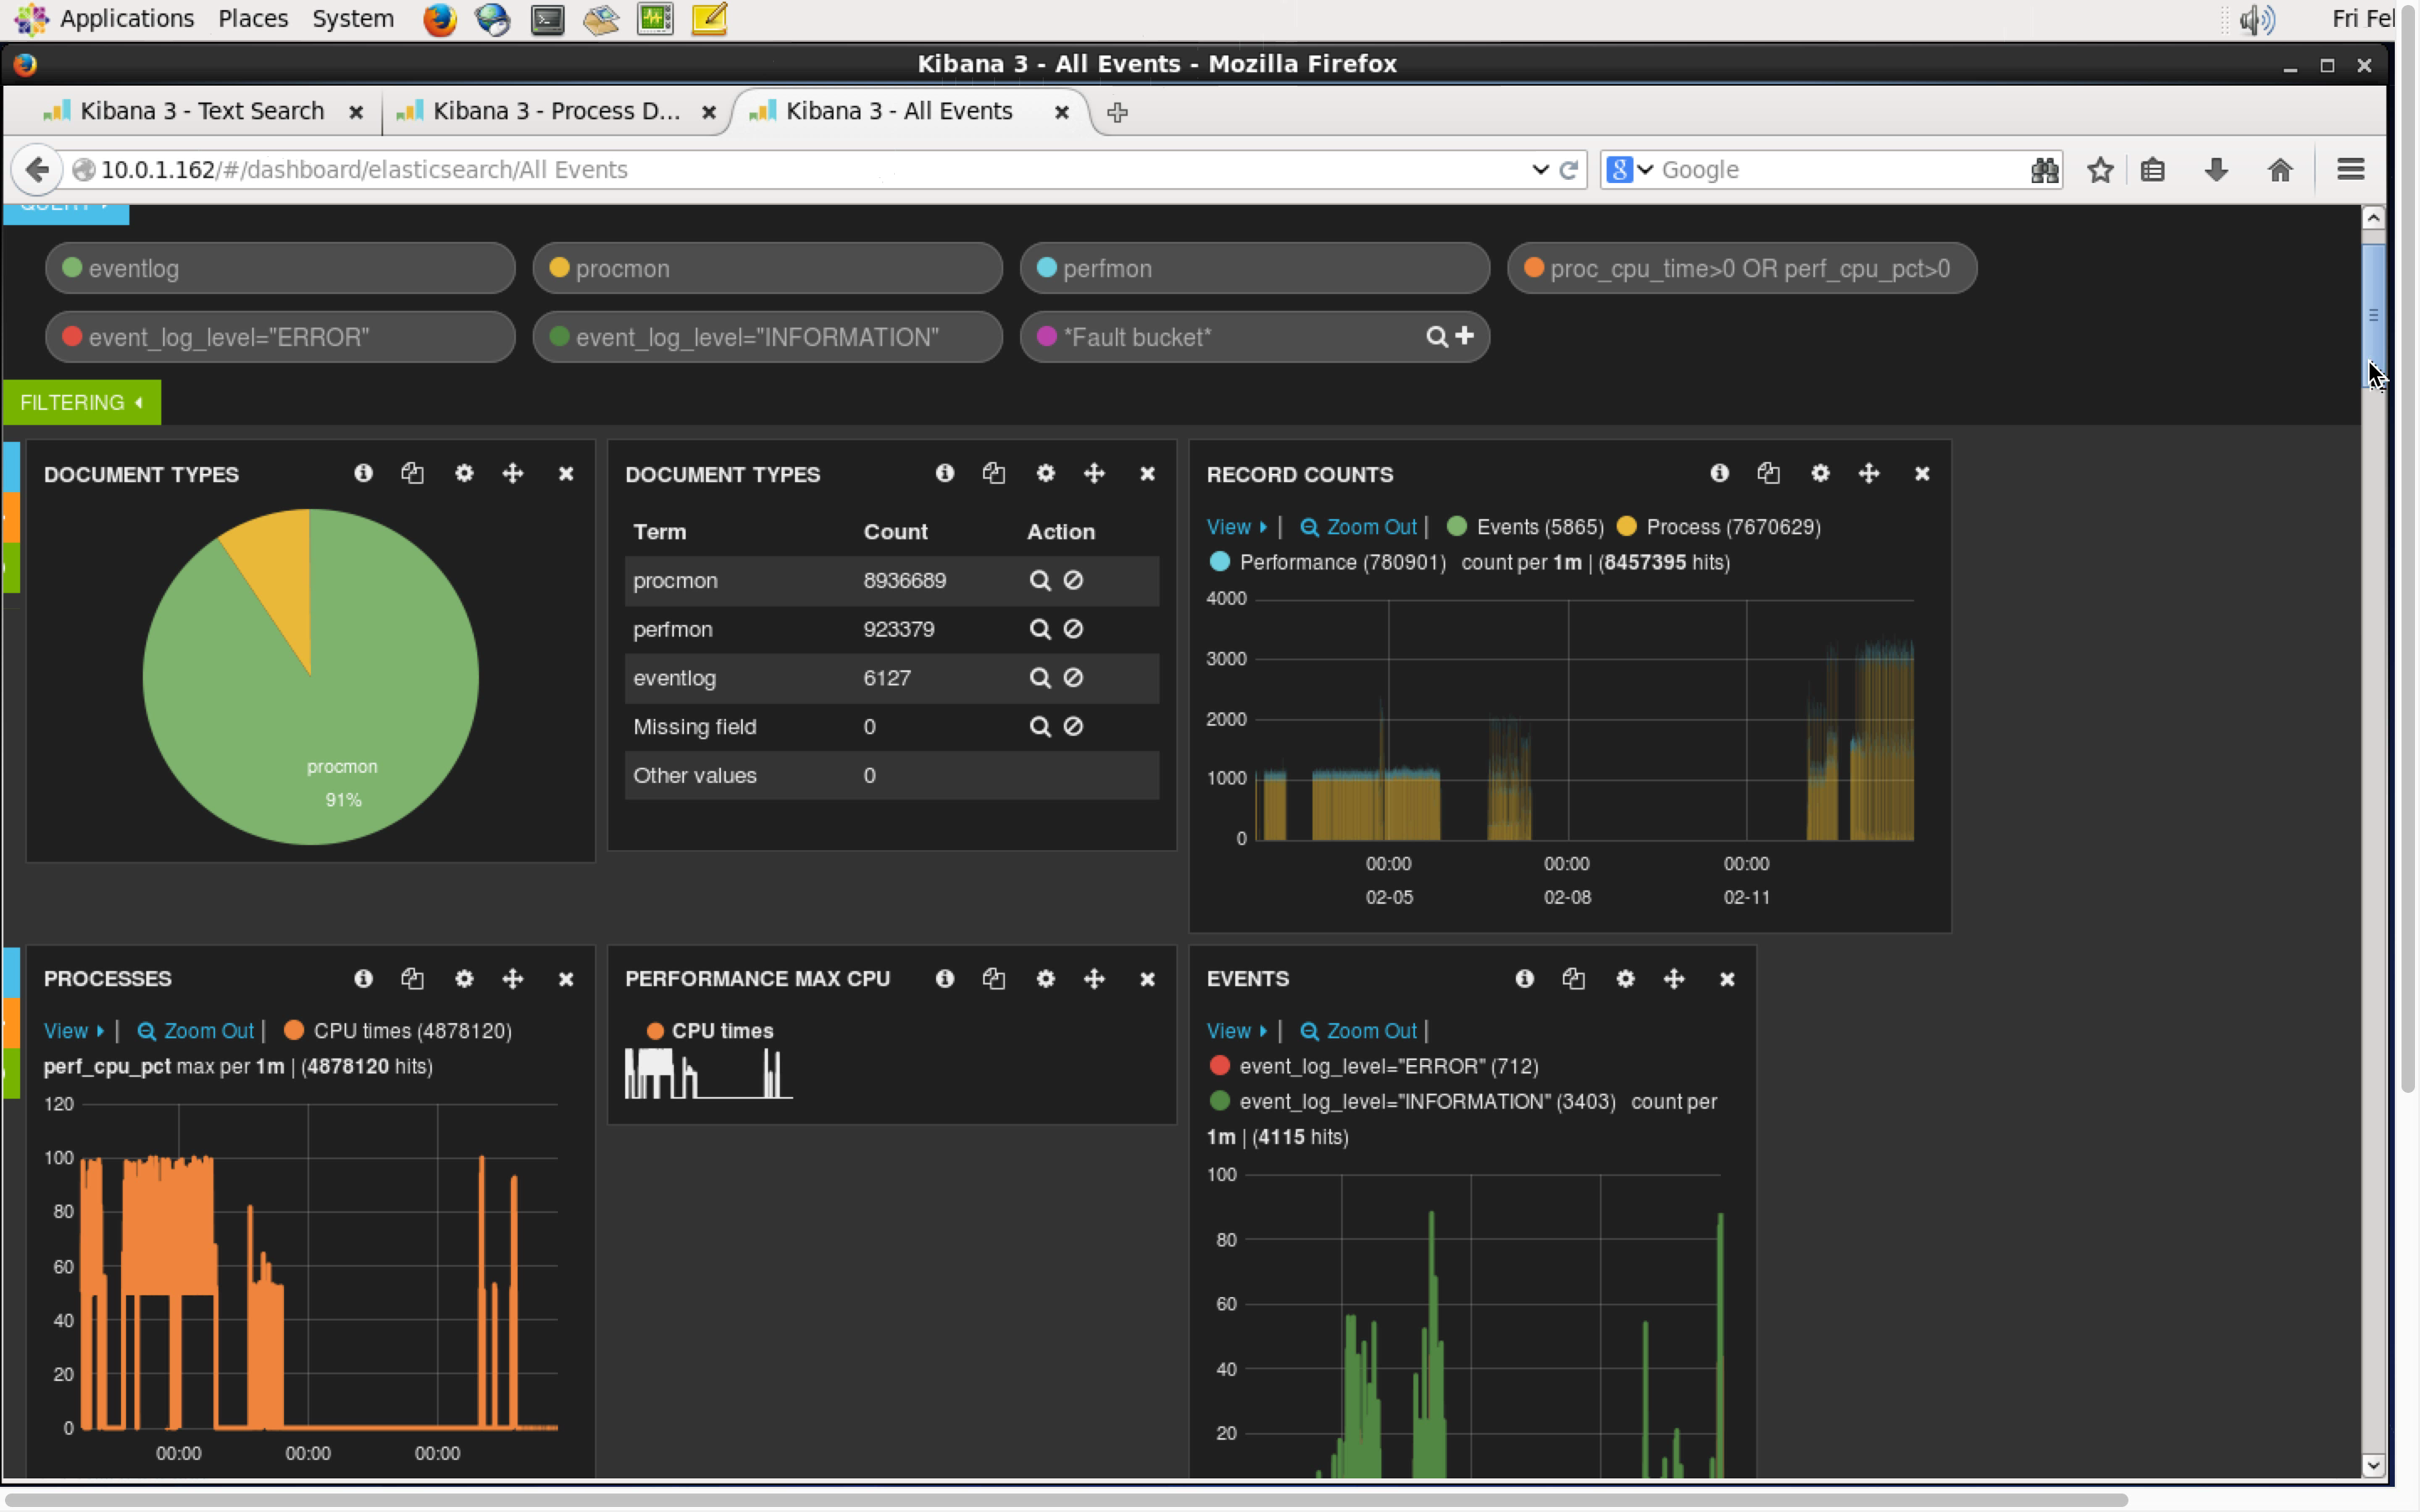 Kibana 3 Dashboard: All Events